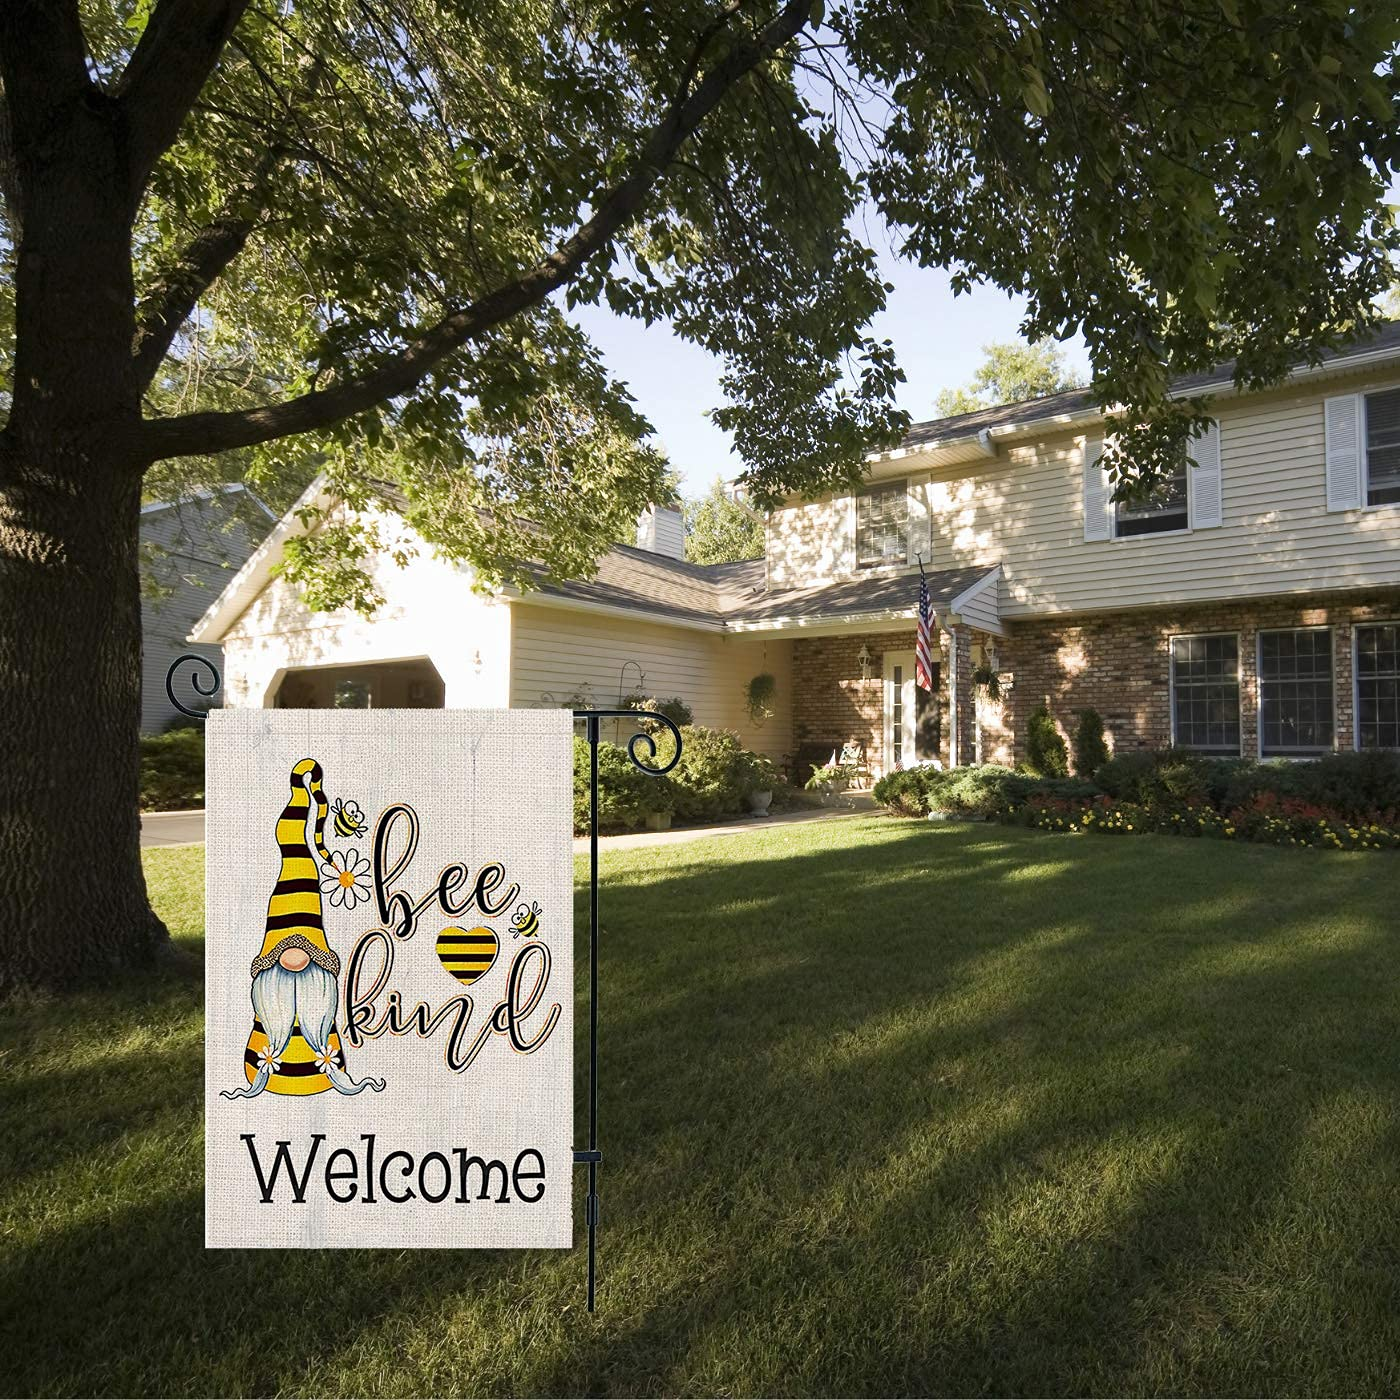 Gnomes Bee Welcome Garden Flag Burlap Summer Yard Sign Porch Outdoor Flag Decorations Double Side Vertical for Farmhouse Flags Yard Decor 12.5 x 18 Inch (Bee)